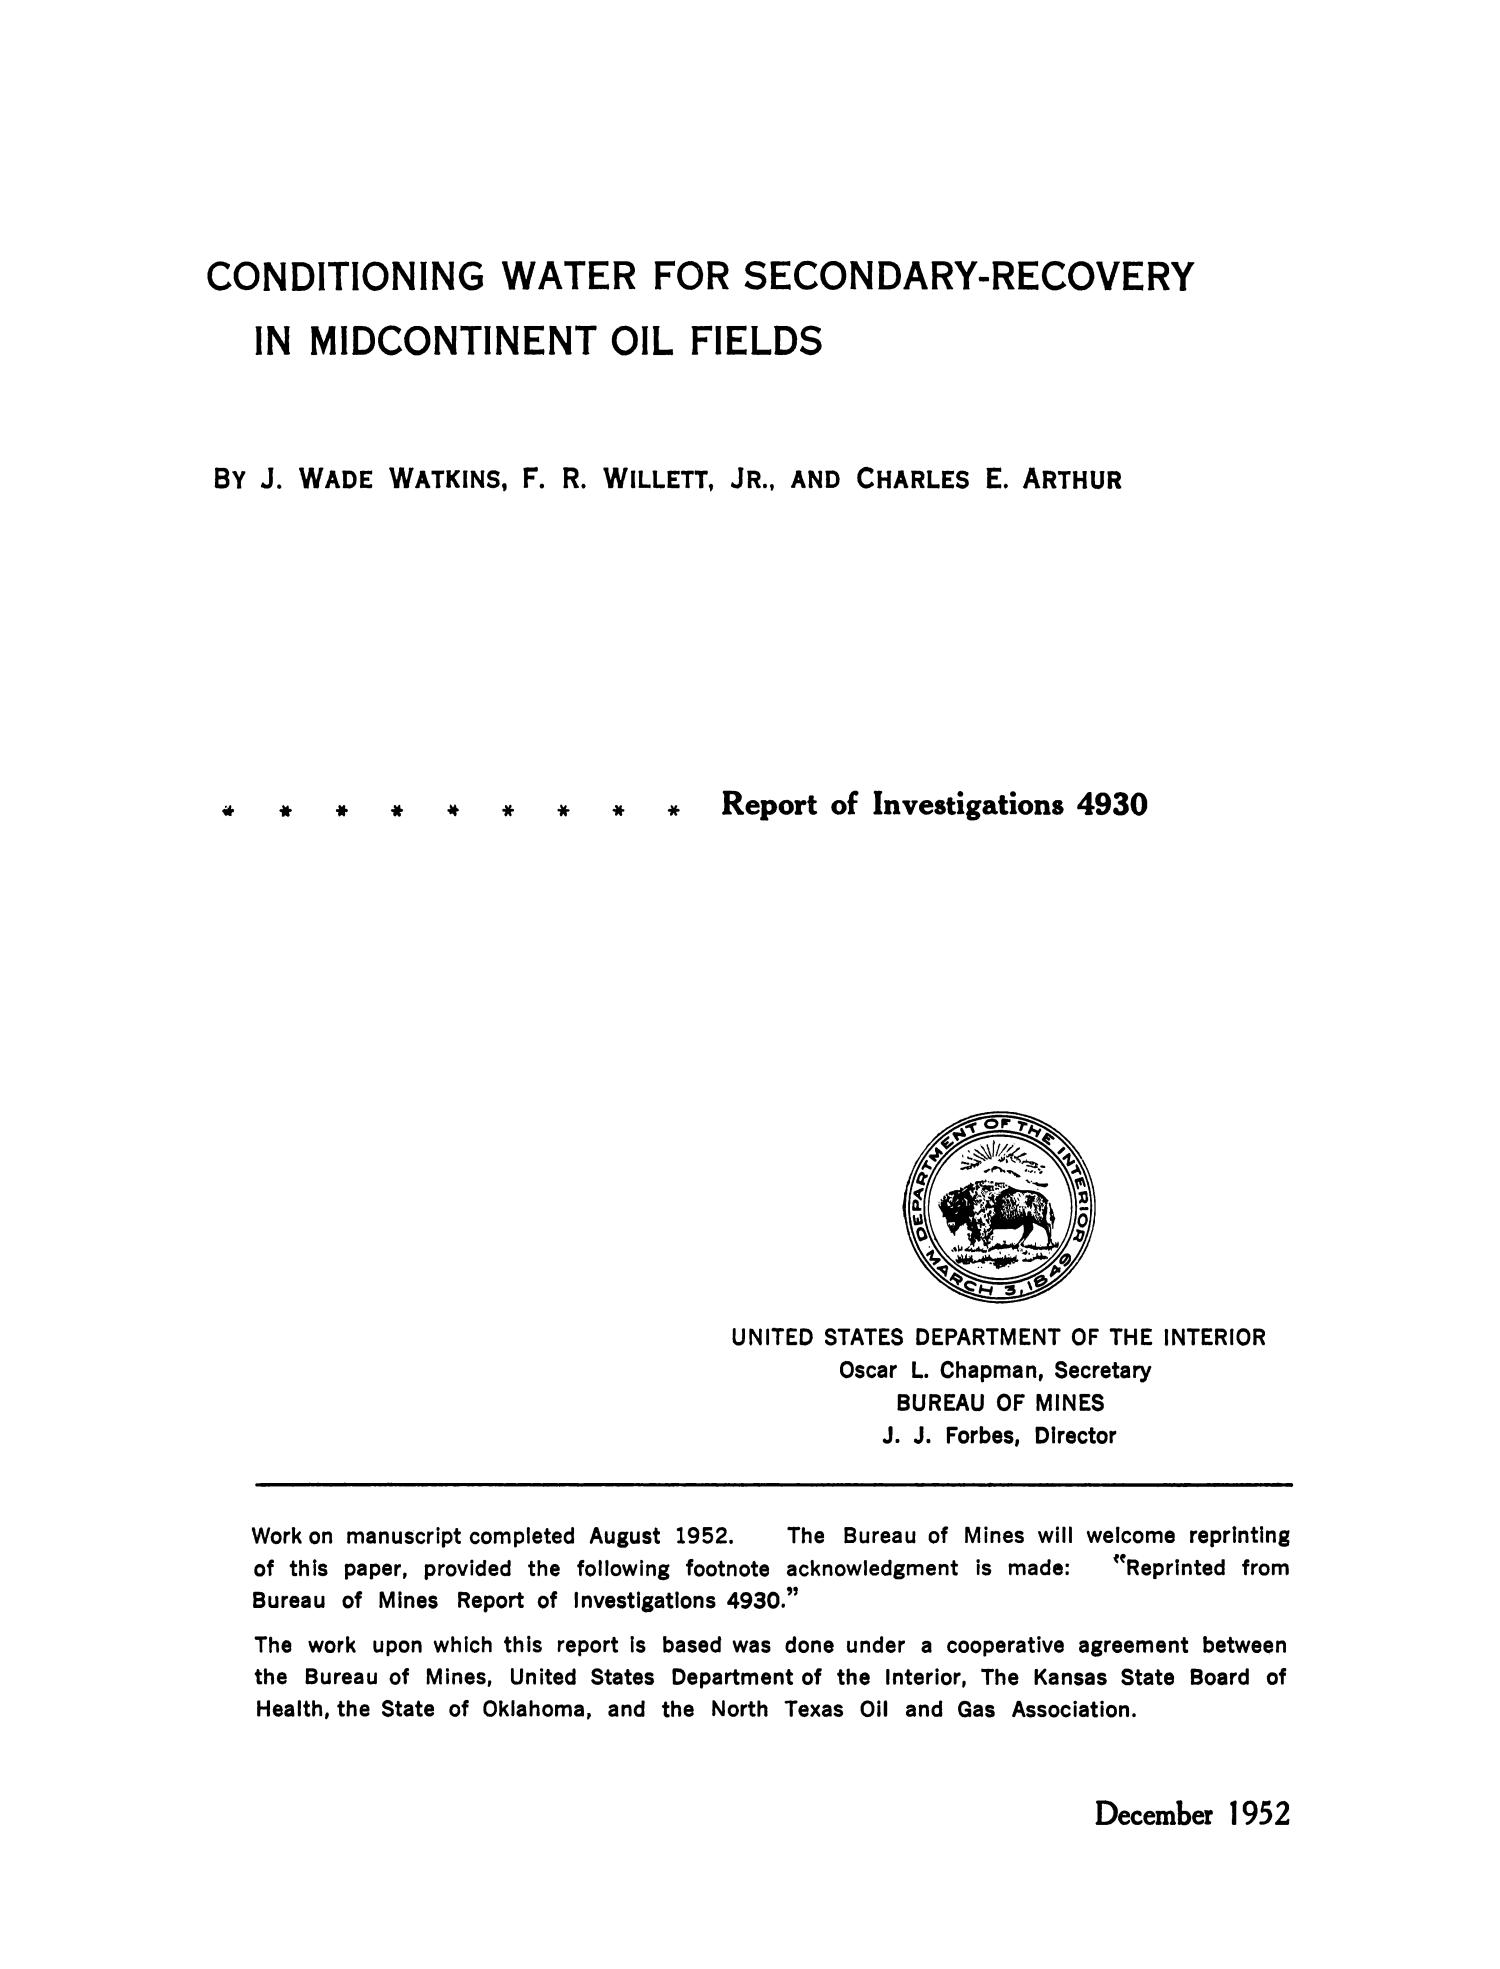 Conditioning Water for Secondary-Recovery in Midcontinent Oil Fields                                                                                                      Title Page